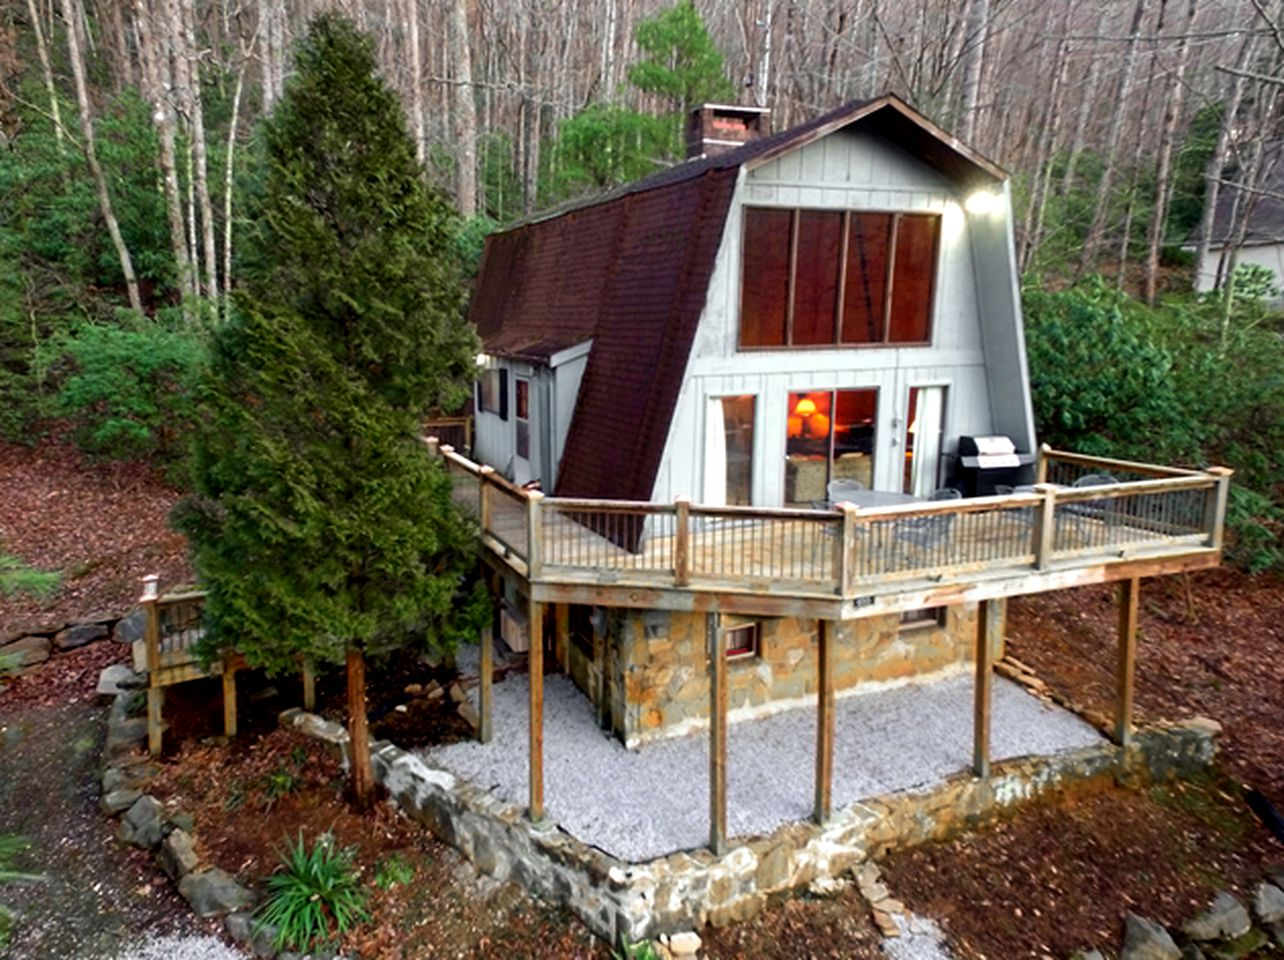 Blue Ridge cabin rental for a family getaway in North Carolina